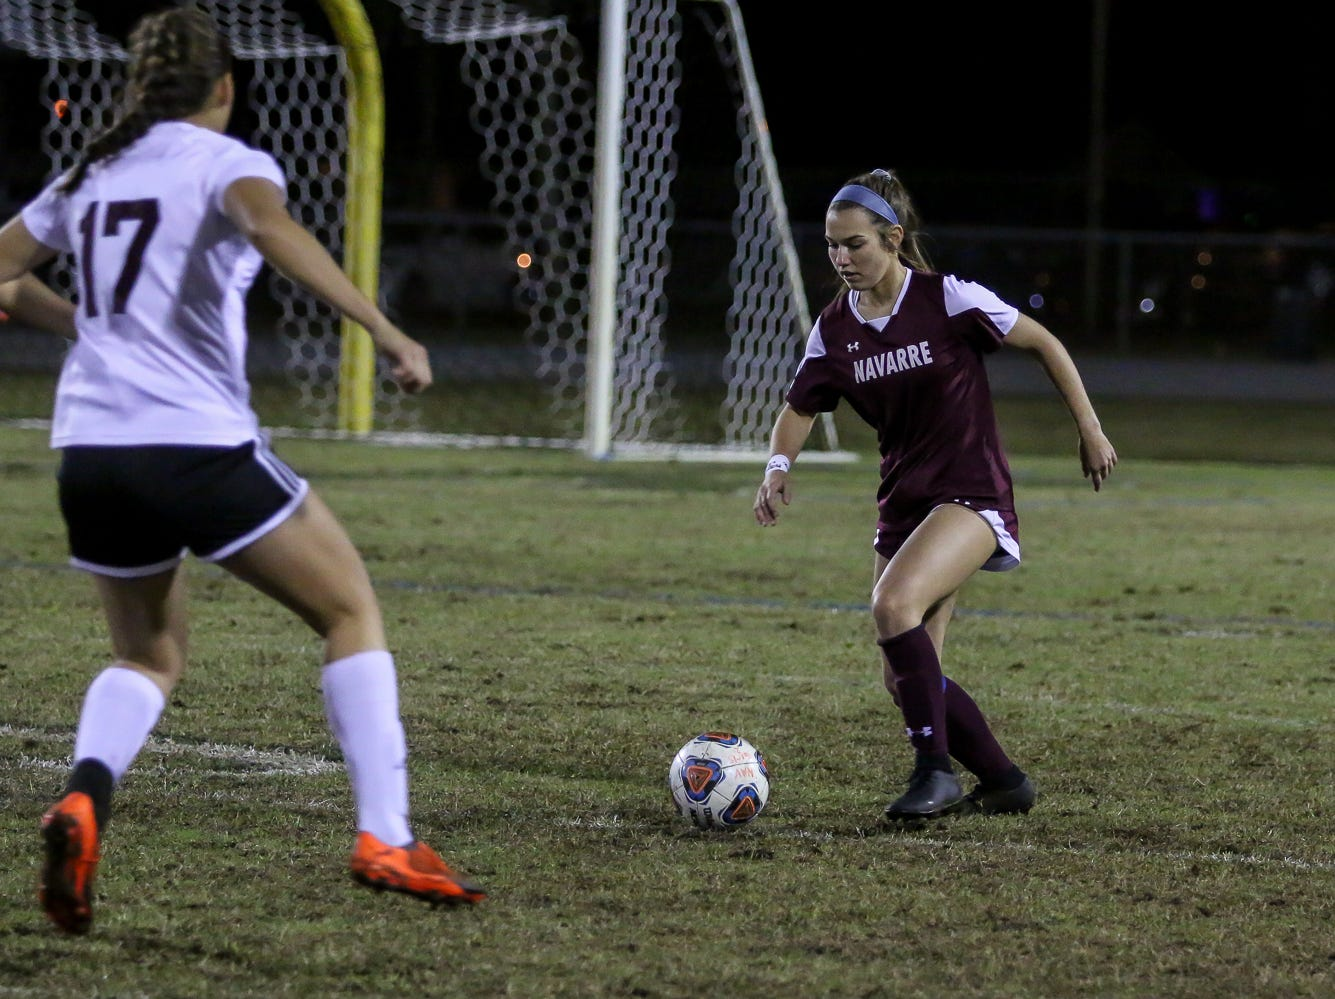 Navarre's Skylar Woods (18) works the ball to get around Niceville's Mia Sadler (17) in a District 1-4A showdown of unbeaten teams at Navarre High School on Tuesday, December 4, 2018. The game ended in a 1-1 tie.